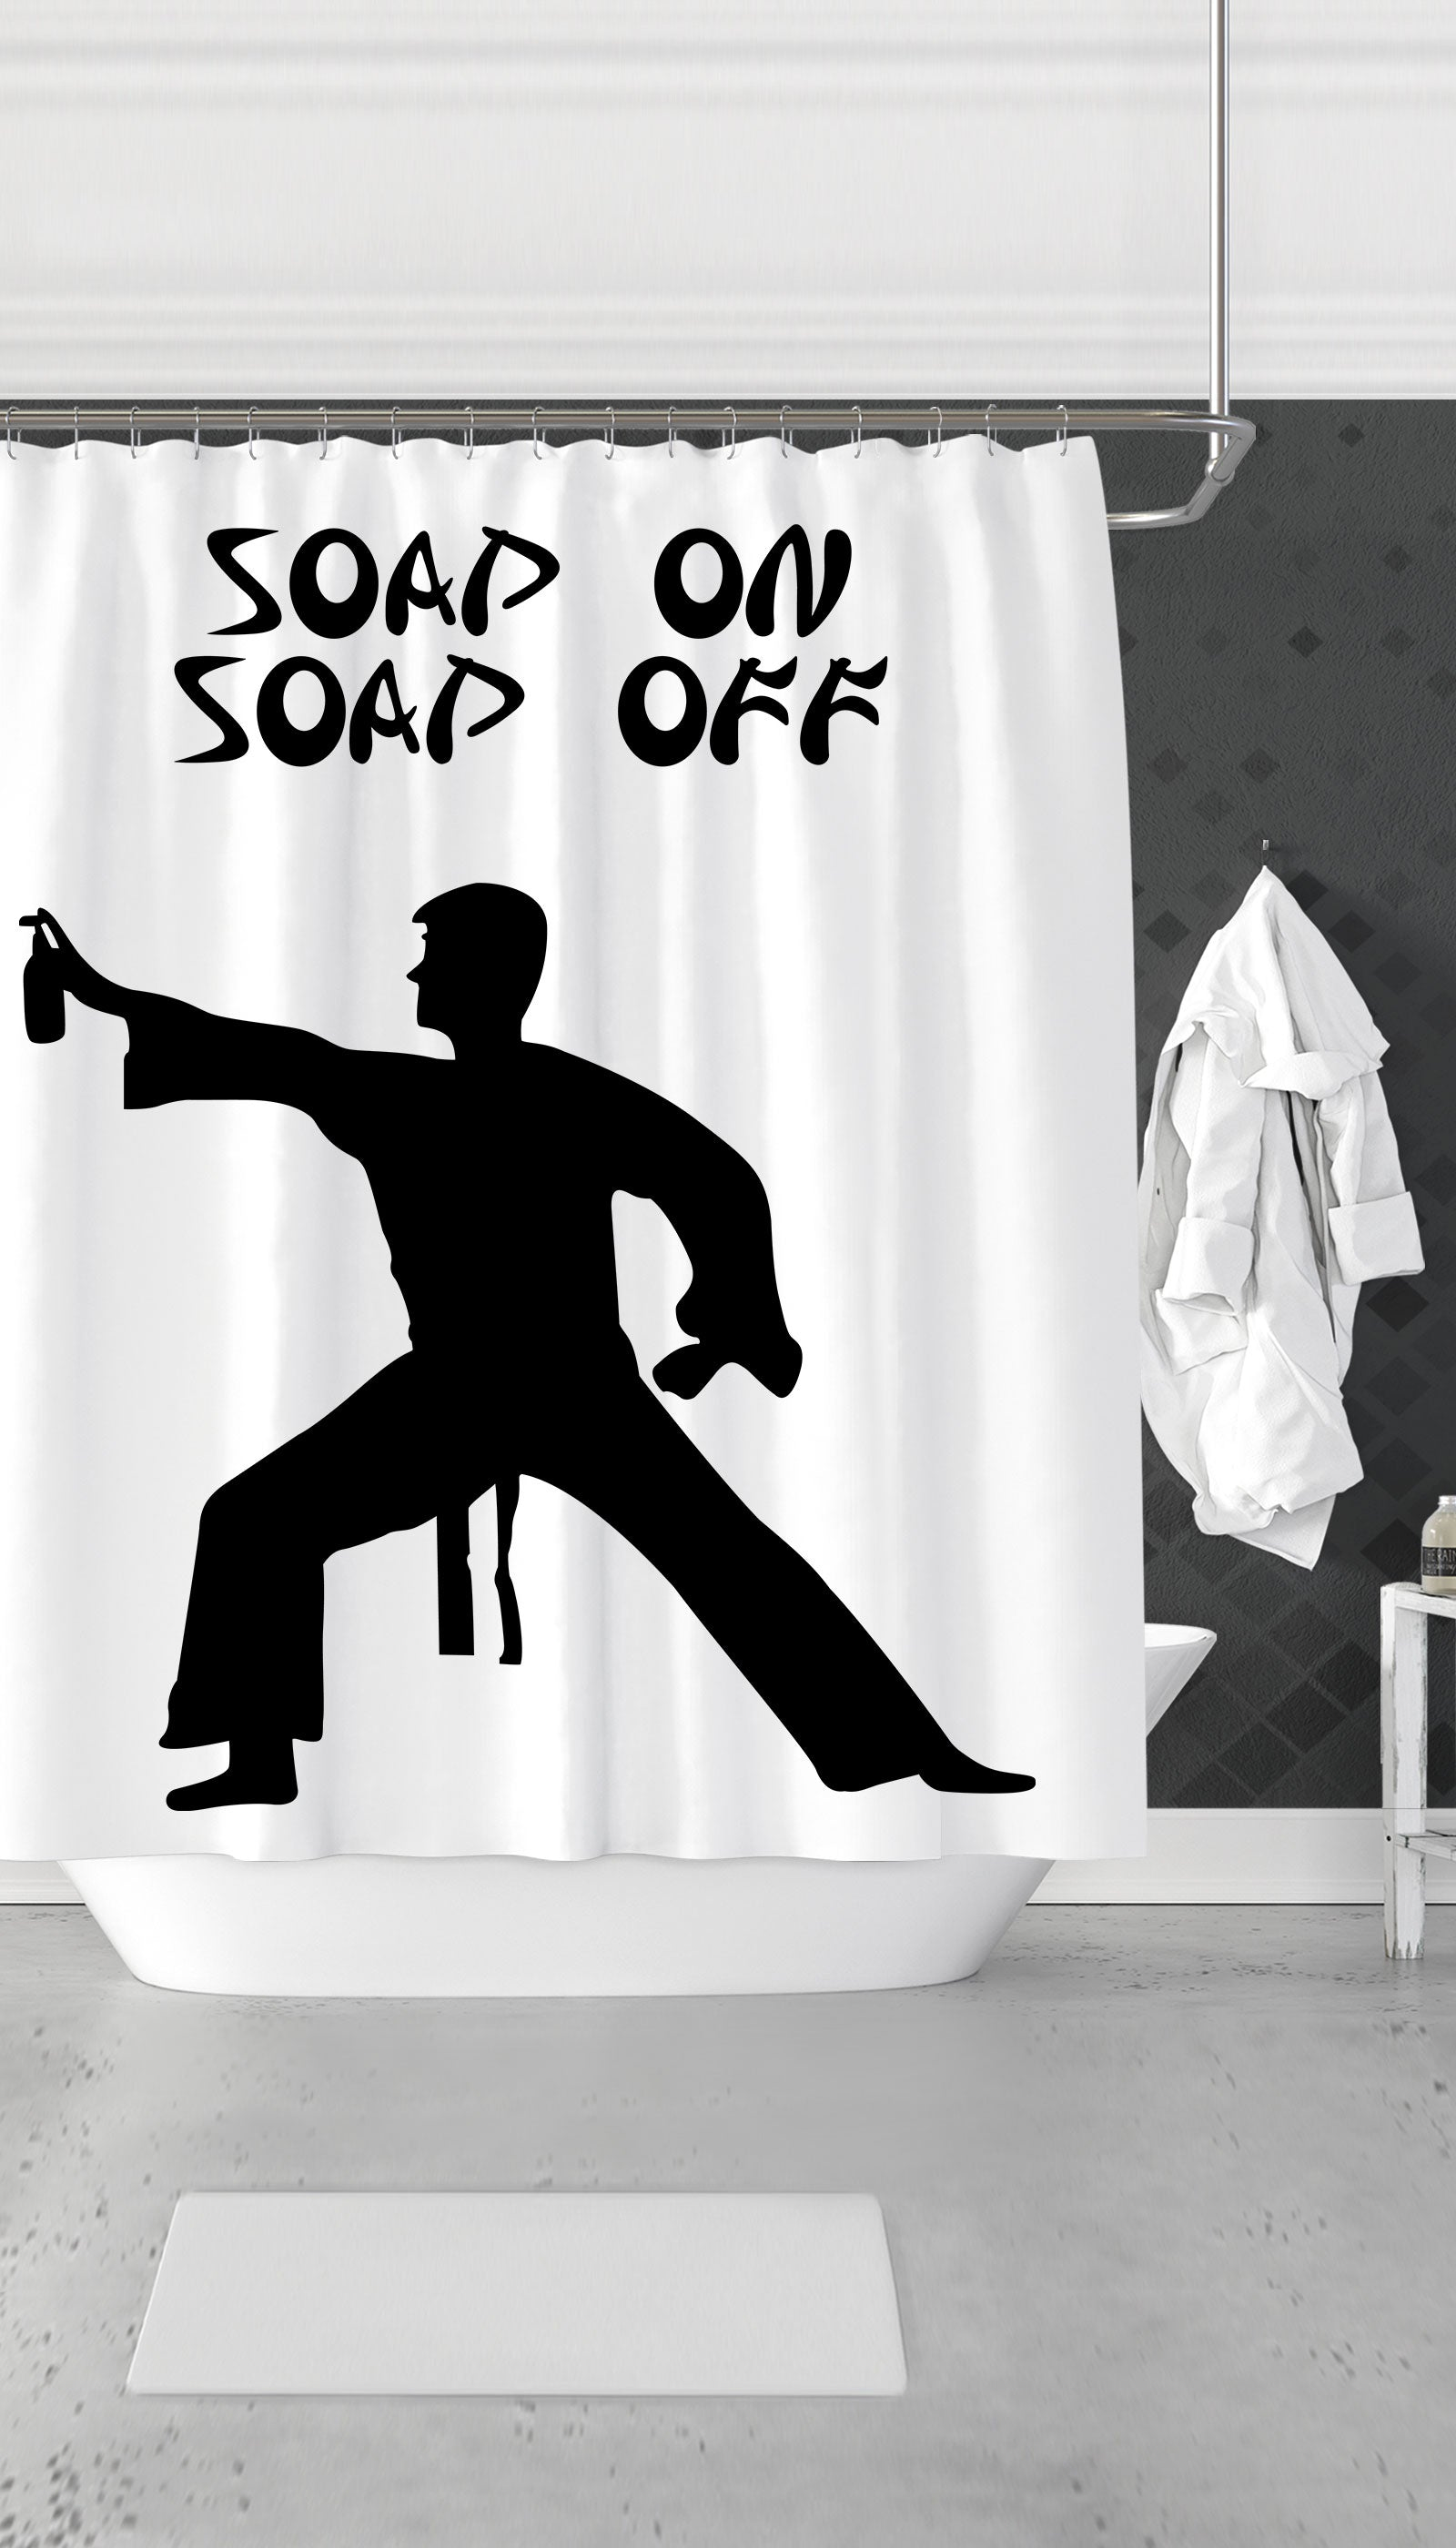 Soap On Soap Off Funny Clever Dorm Shower Curtain Gift Sarcastic Me